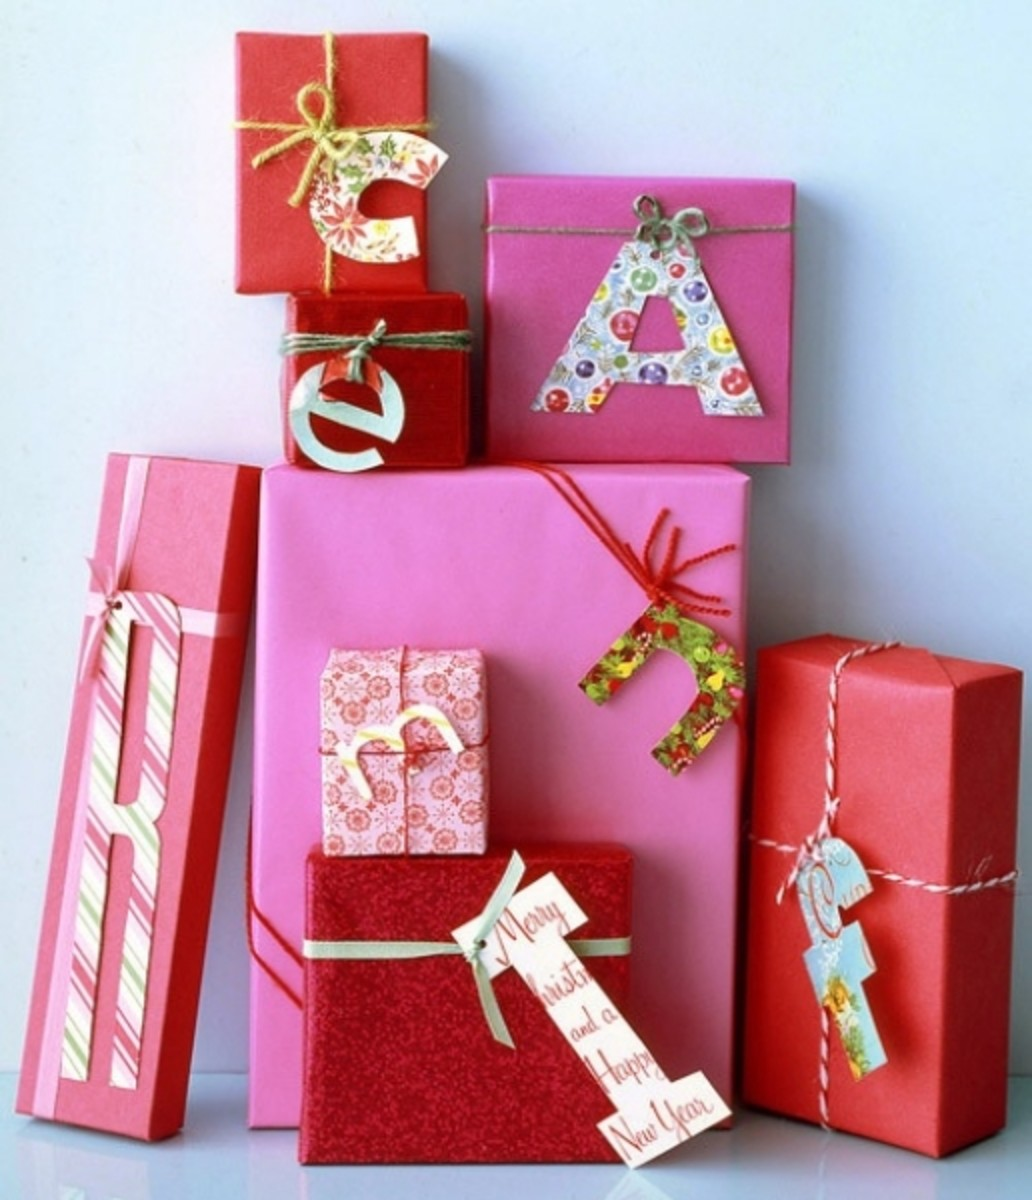 Simple, quick, & creative ideas for gift wrapping. Try using the letter of the recipient's first name as a personalized name card!